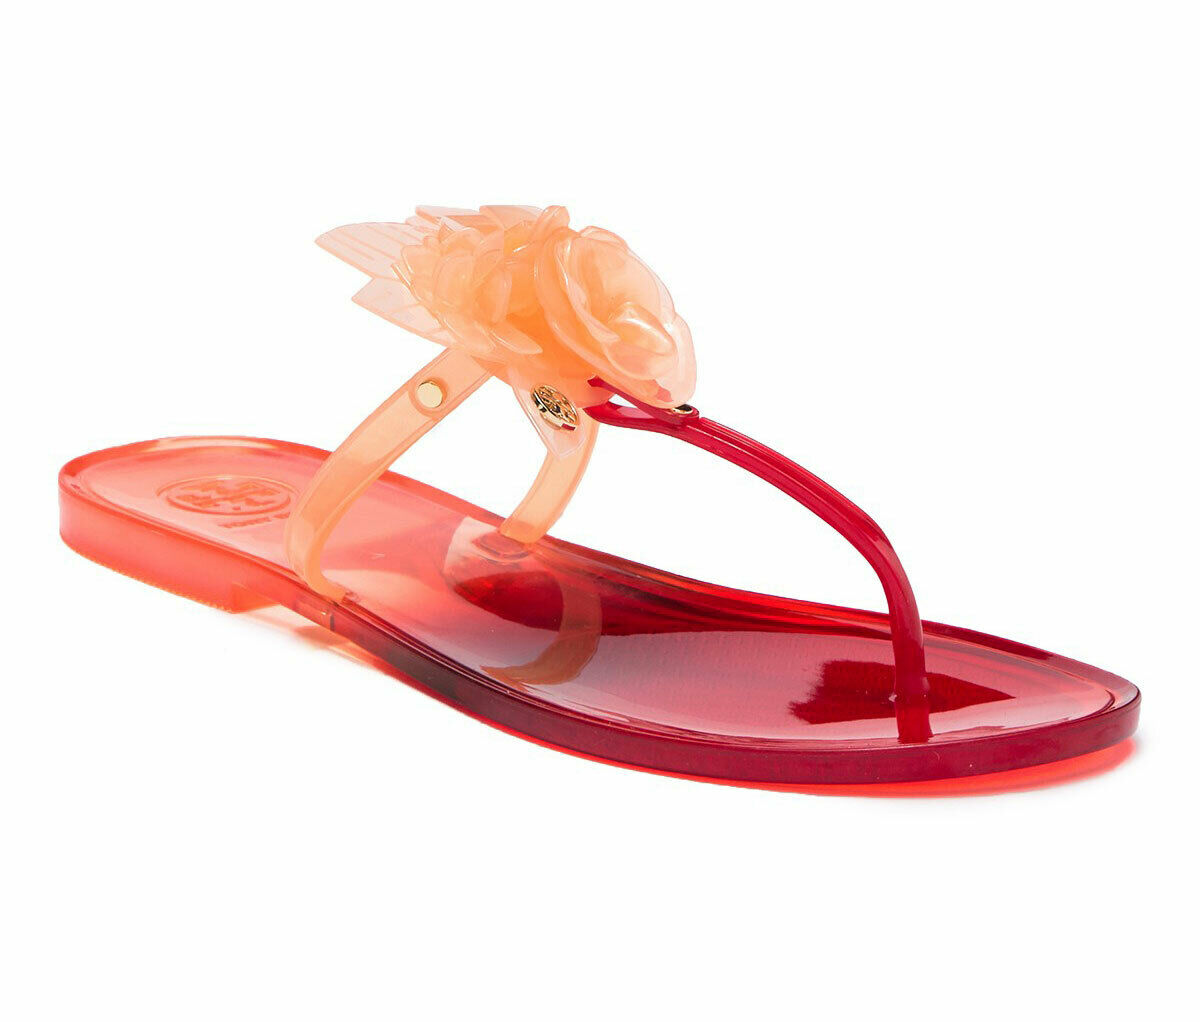 Tory Burch Blossom Pink JELLY Thongs Sandals Flip Flop Slides 8